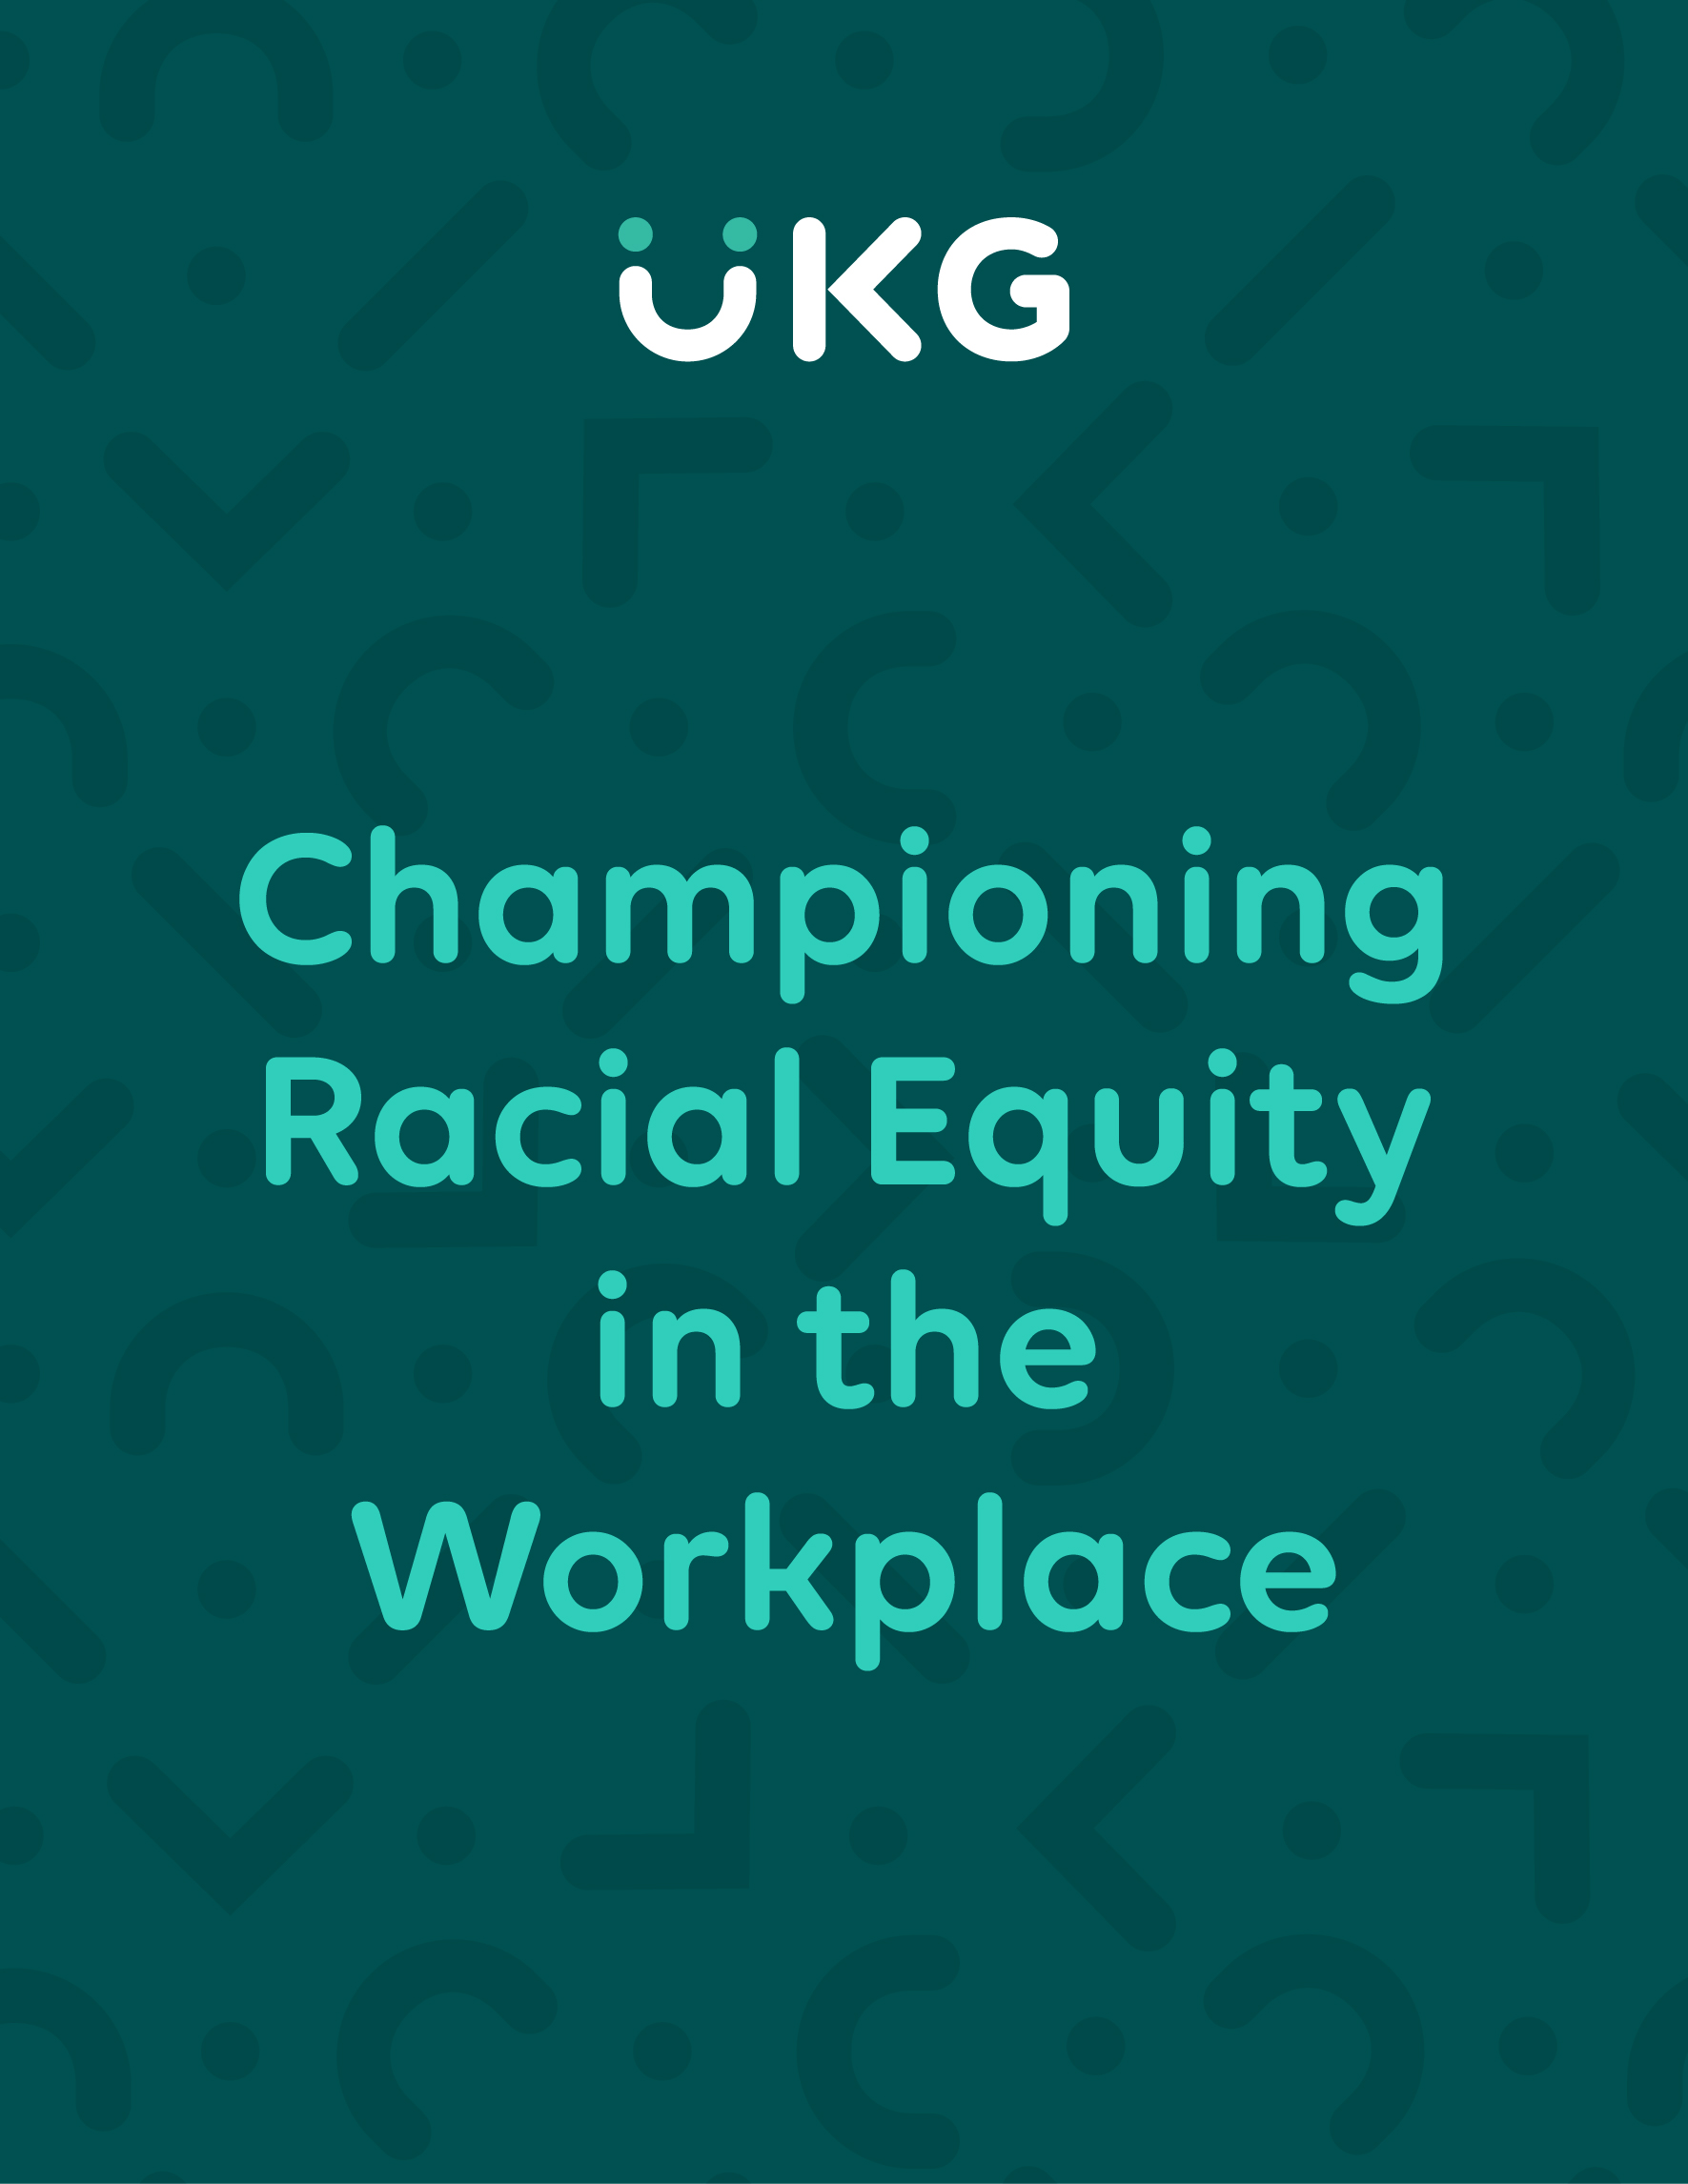 Championing Racial Equity in the Workplace